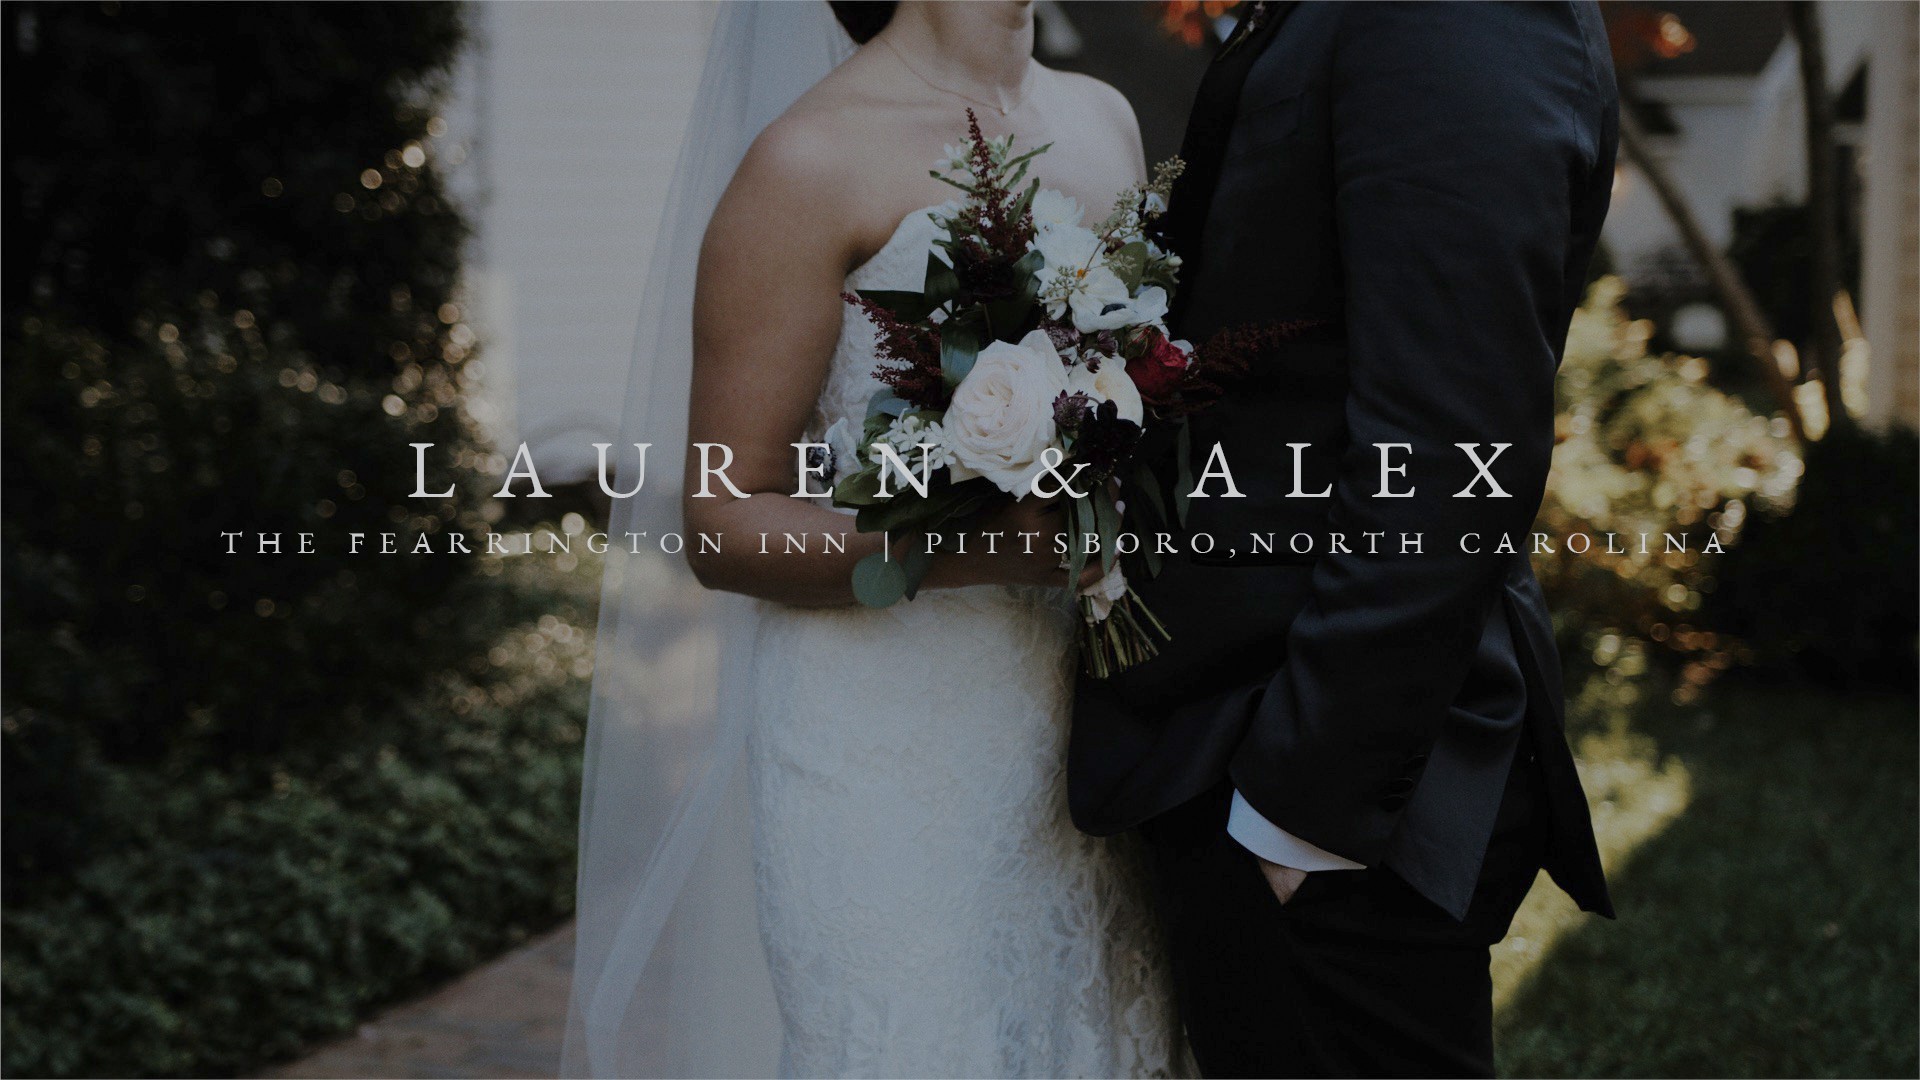 Lauren Bronec + Alex Fraser | Pittsboro, North Carolina | The Fearrington Inn